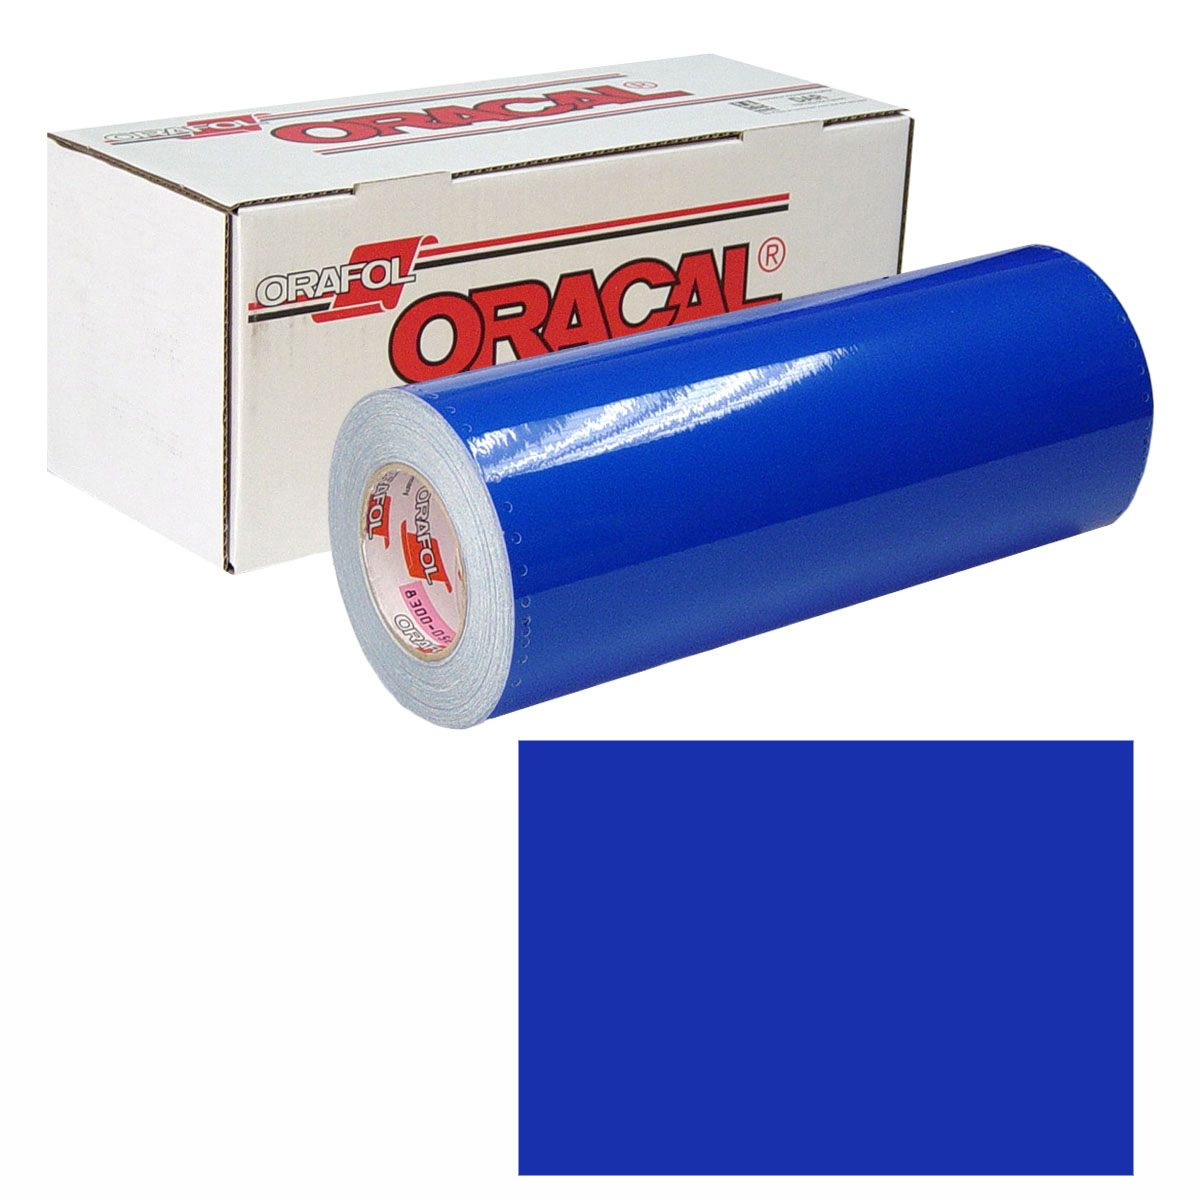 ORACAL 631 Unp 30In X 50Yd 086 Brilliant Blue